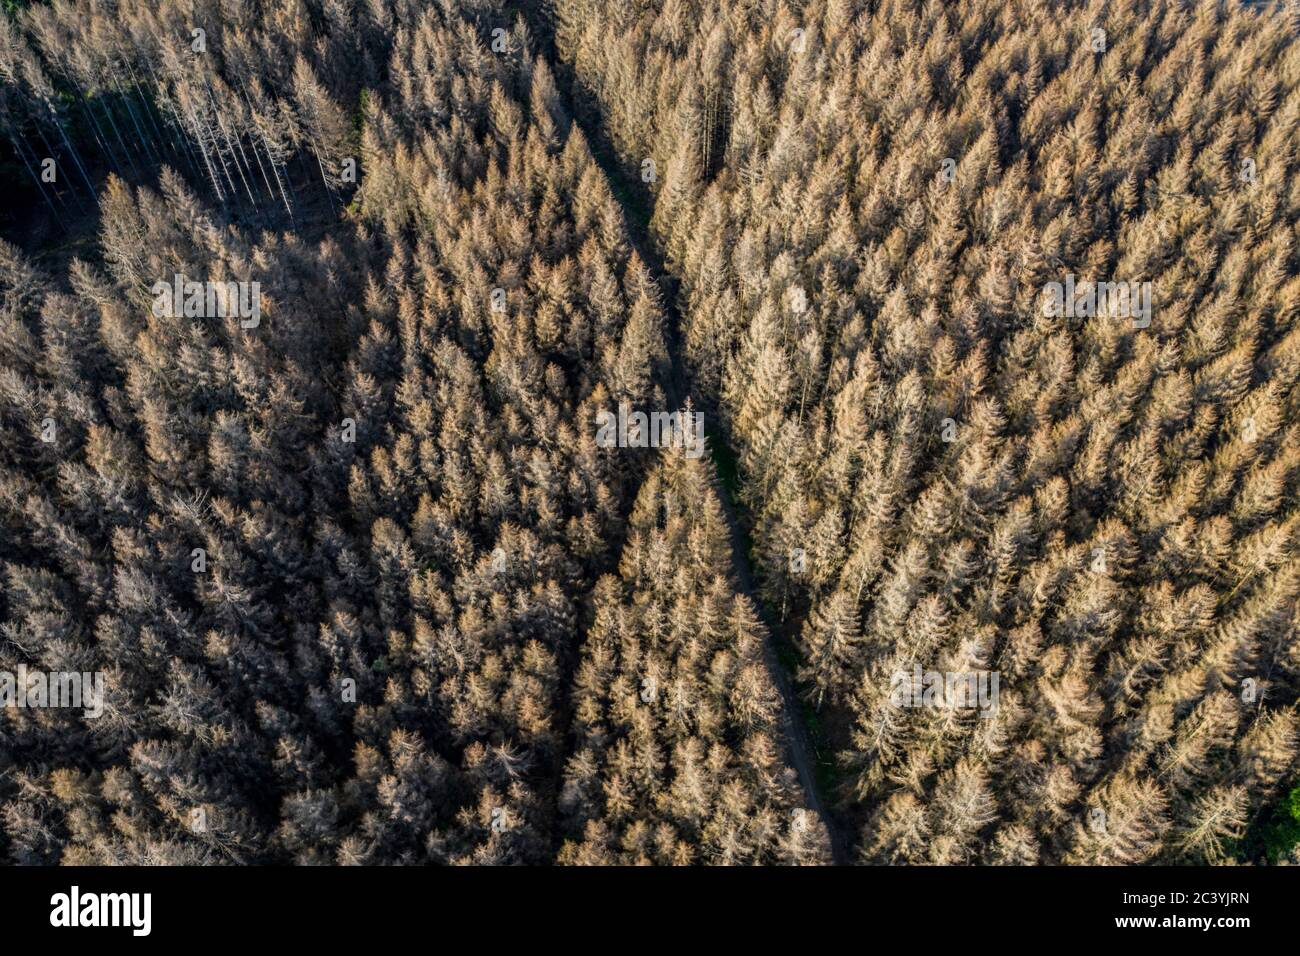 Forest dieback in the Arnsberg Forest Nature Park, more than 70 percent of the spruce trees are diseased, damaged, mostly by the bark beetle, which wa Stock Photo